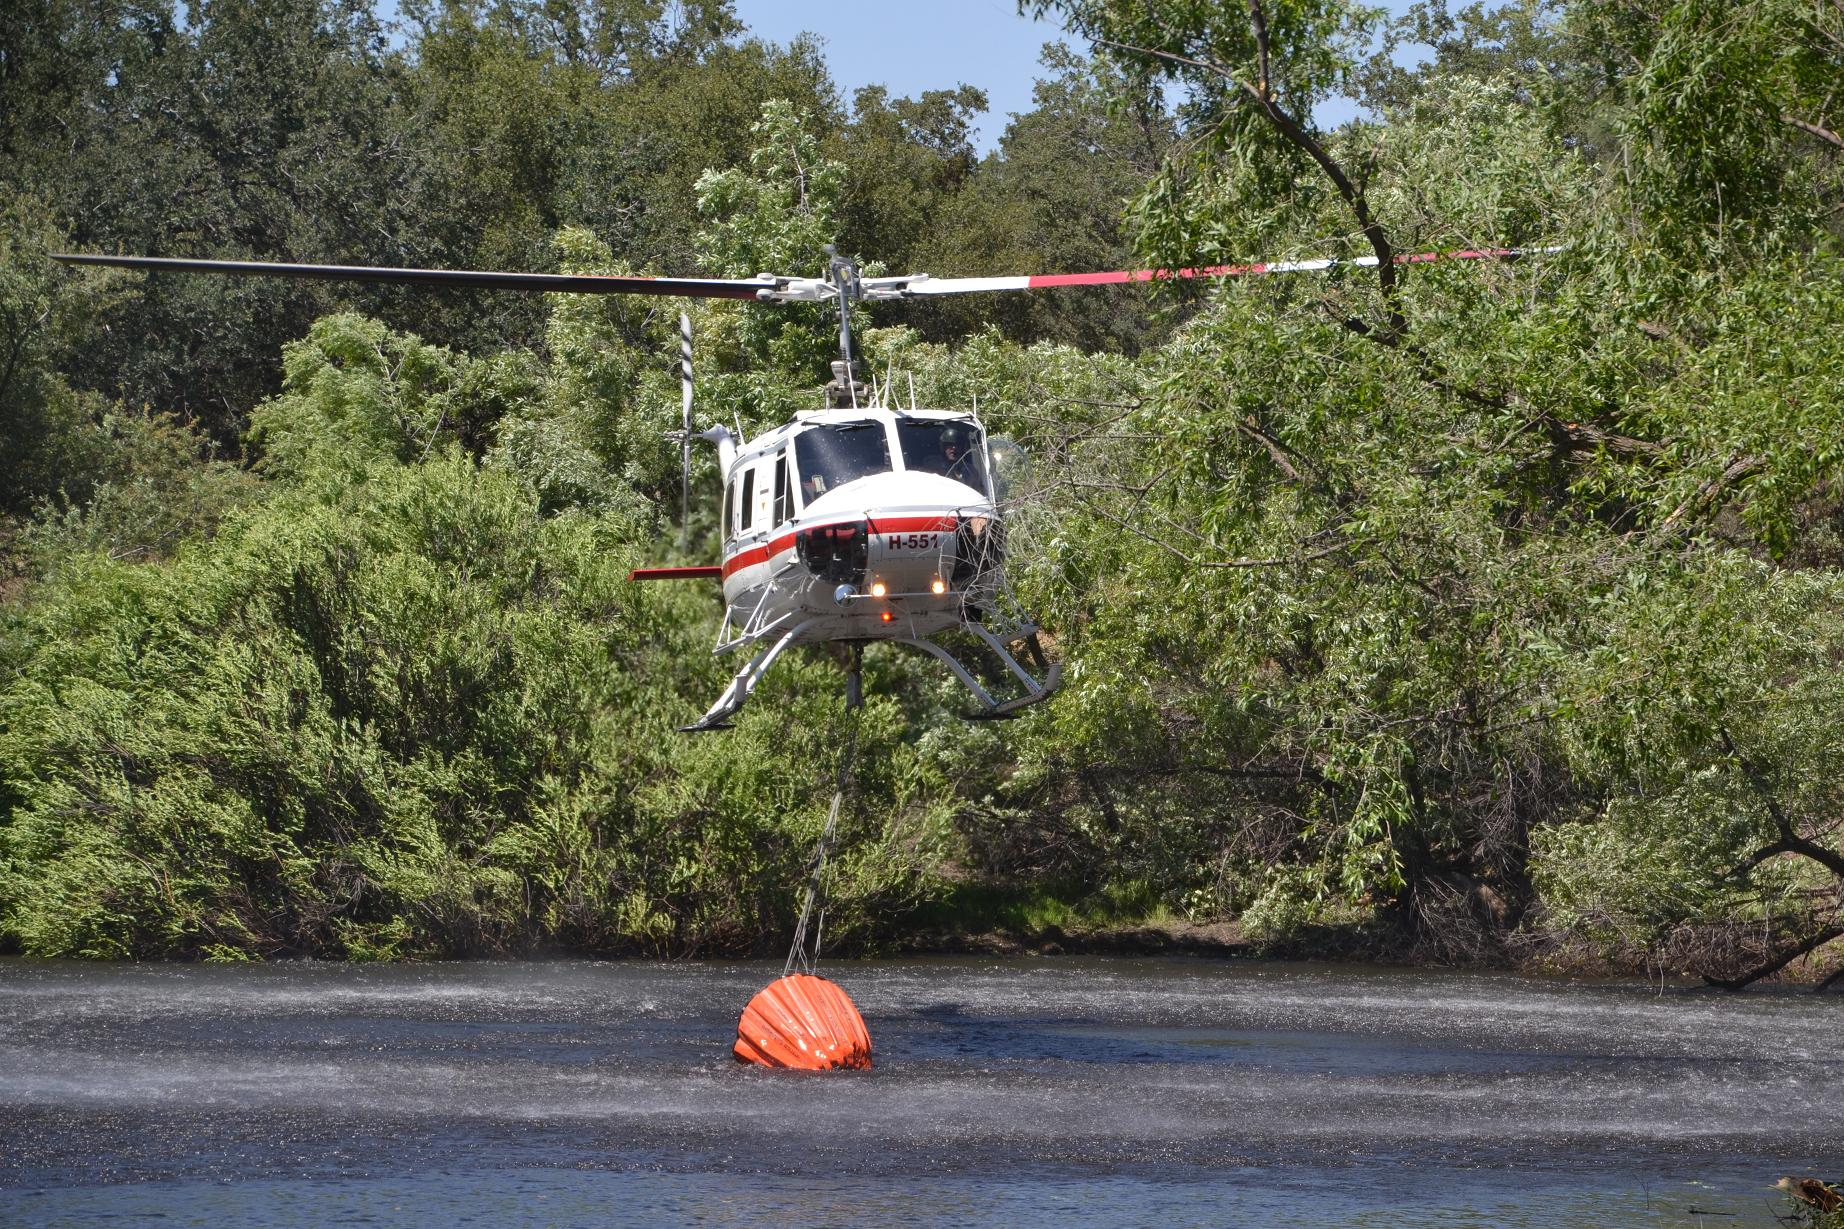 Contract helicopter H-551 - photo by Gina Clugston